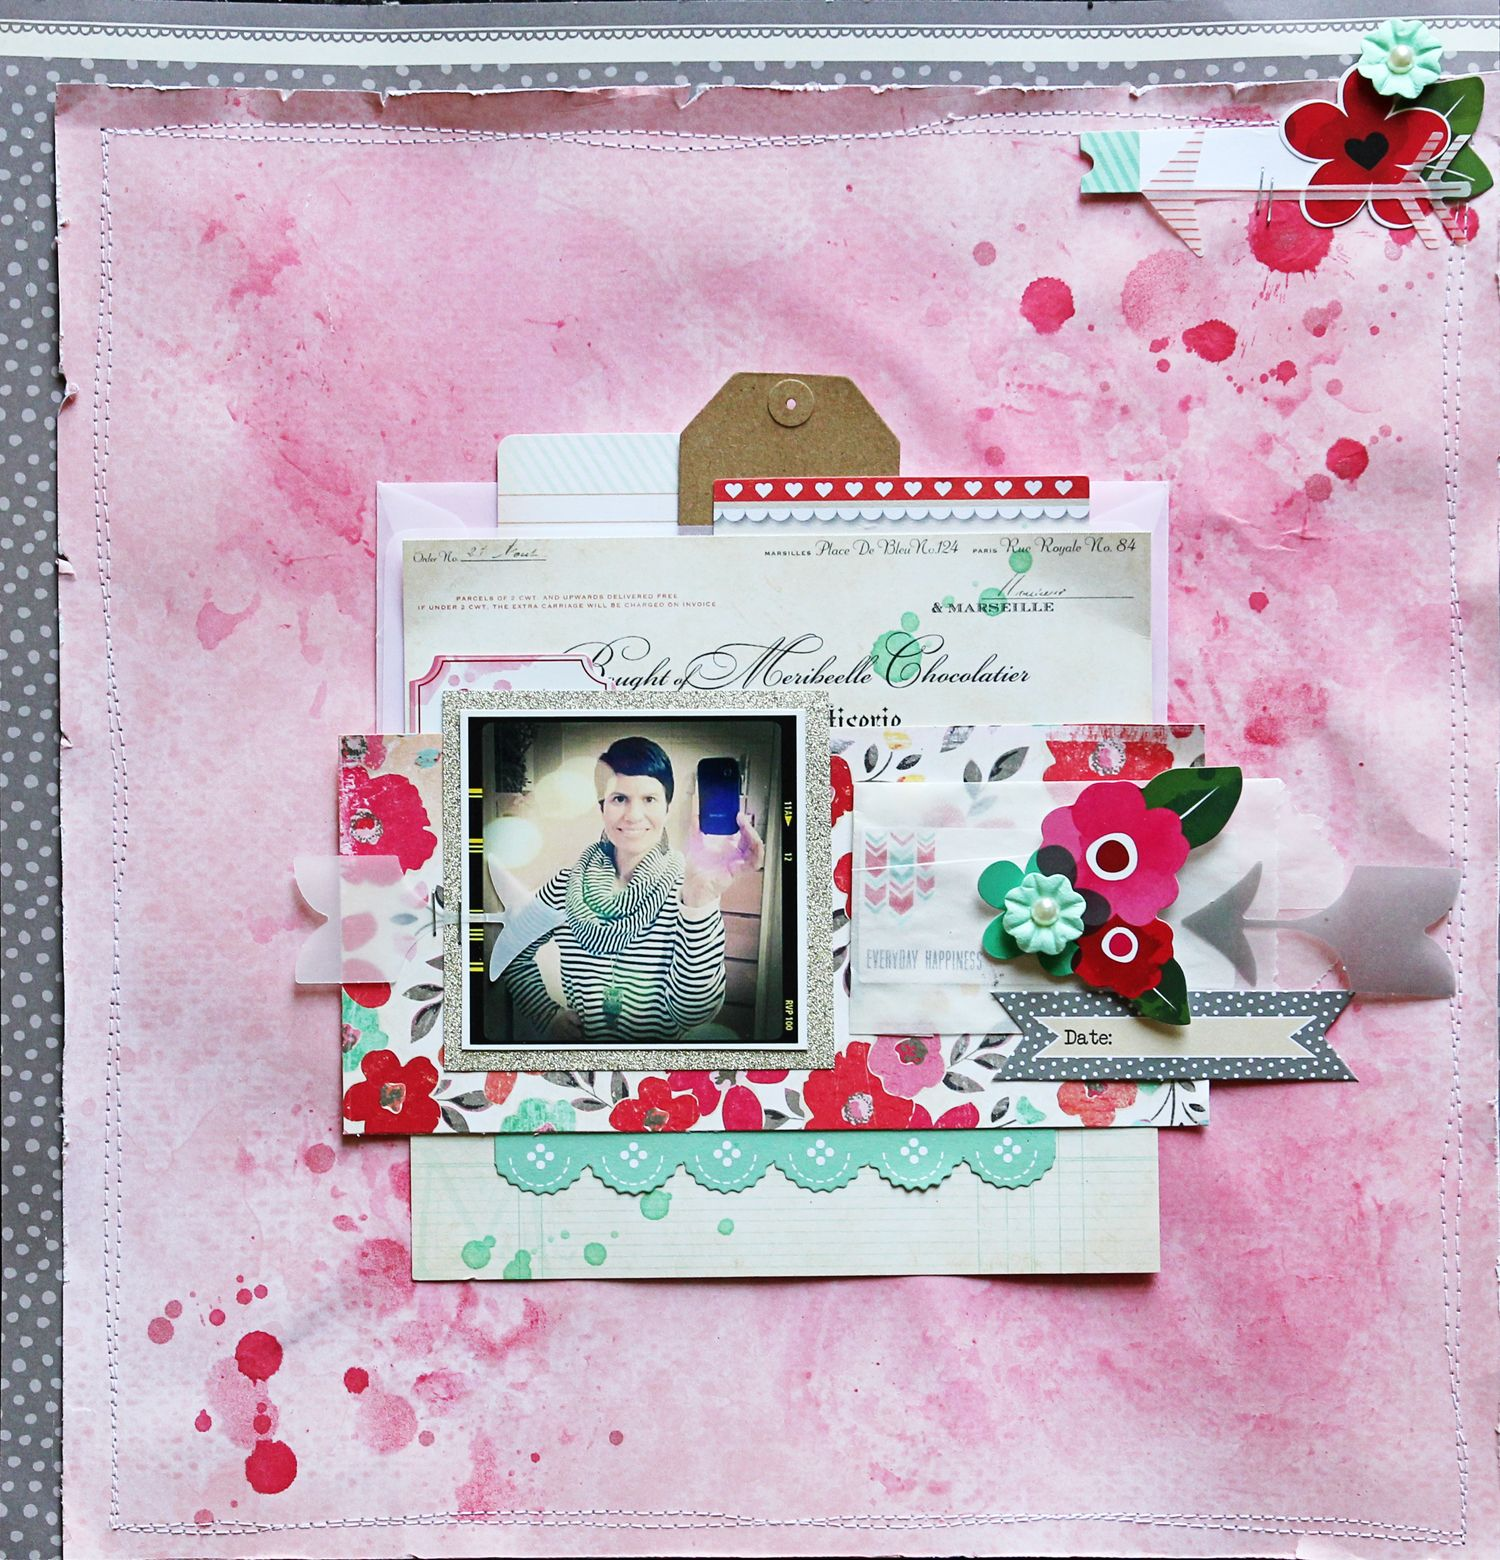 ** Chic Tags- delightful paper tag **: Here is our amazing guest designer for April